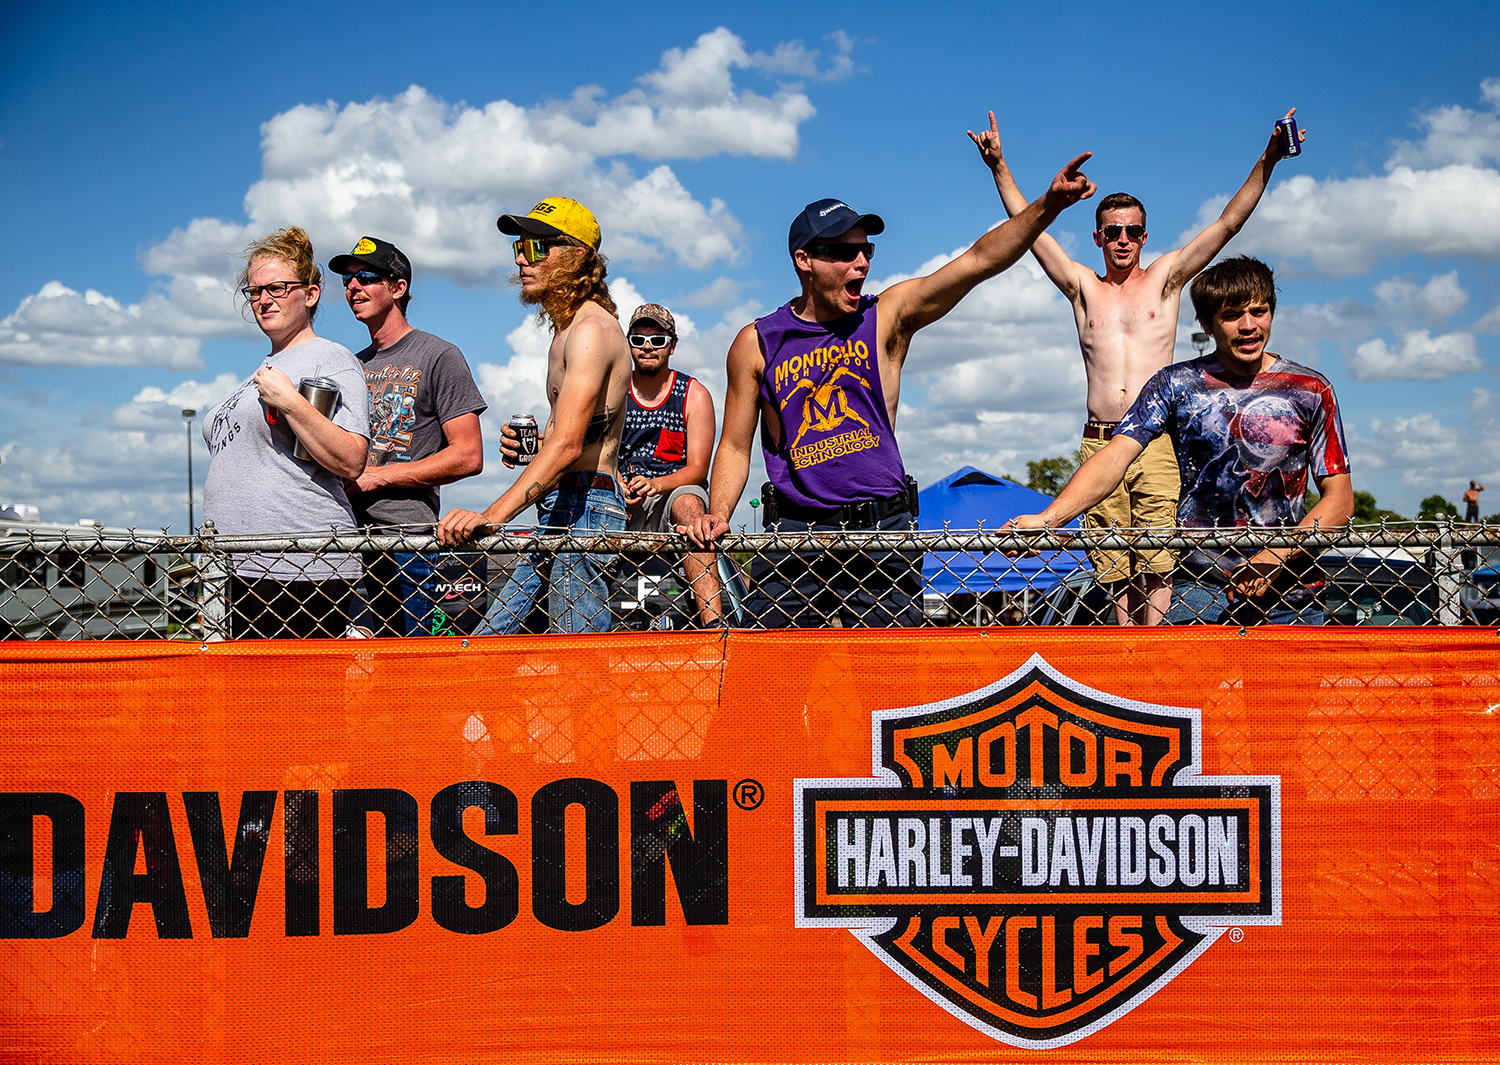 Fans cheer on the racers as they go through turn one during the American Flat Track Springfield Mile II at the Illinois State Fairgrounds, Sunday, Sept. 2, 2018, in Springfield, Ill. [Justin L. Fowler/The State Journal-Register]